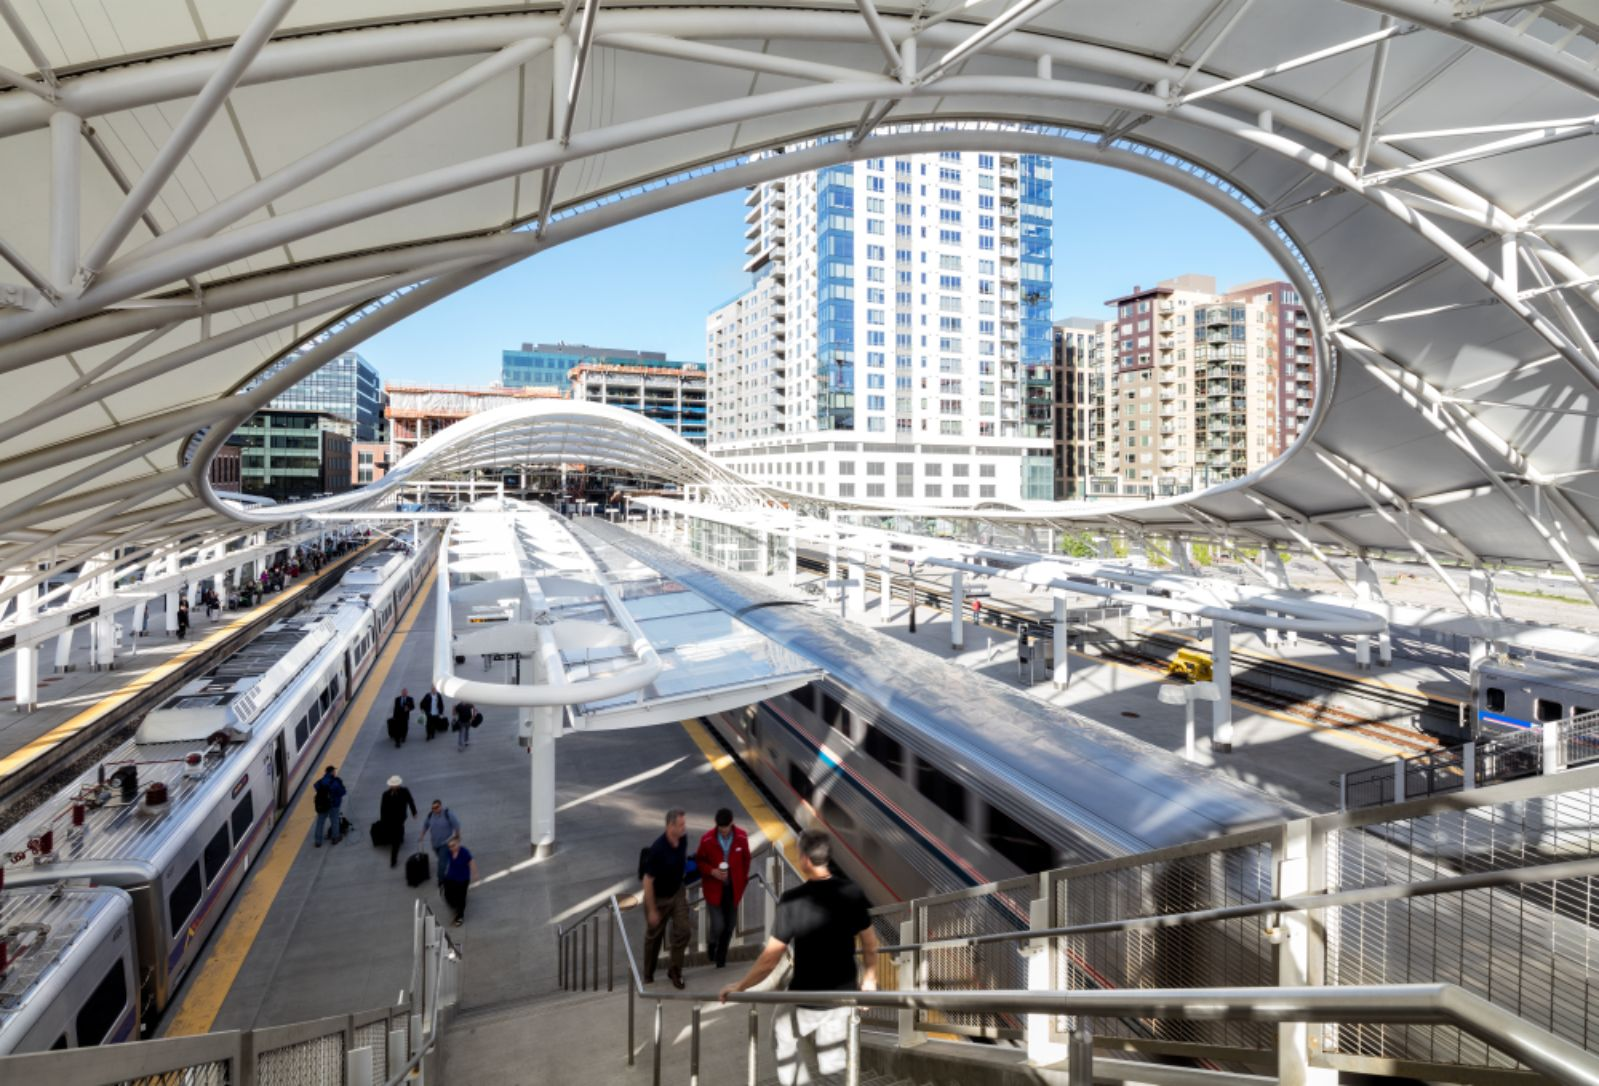 Denver Union Station By Som A As Architecture